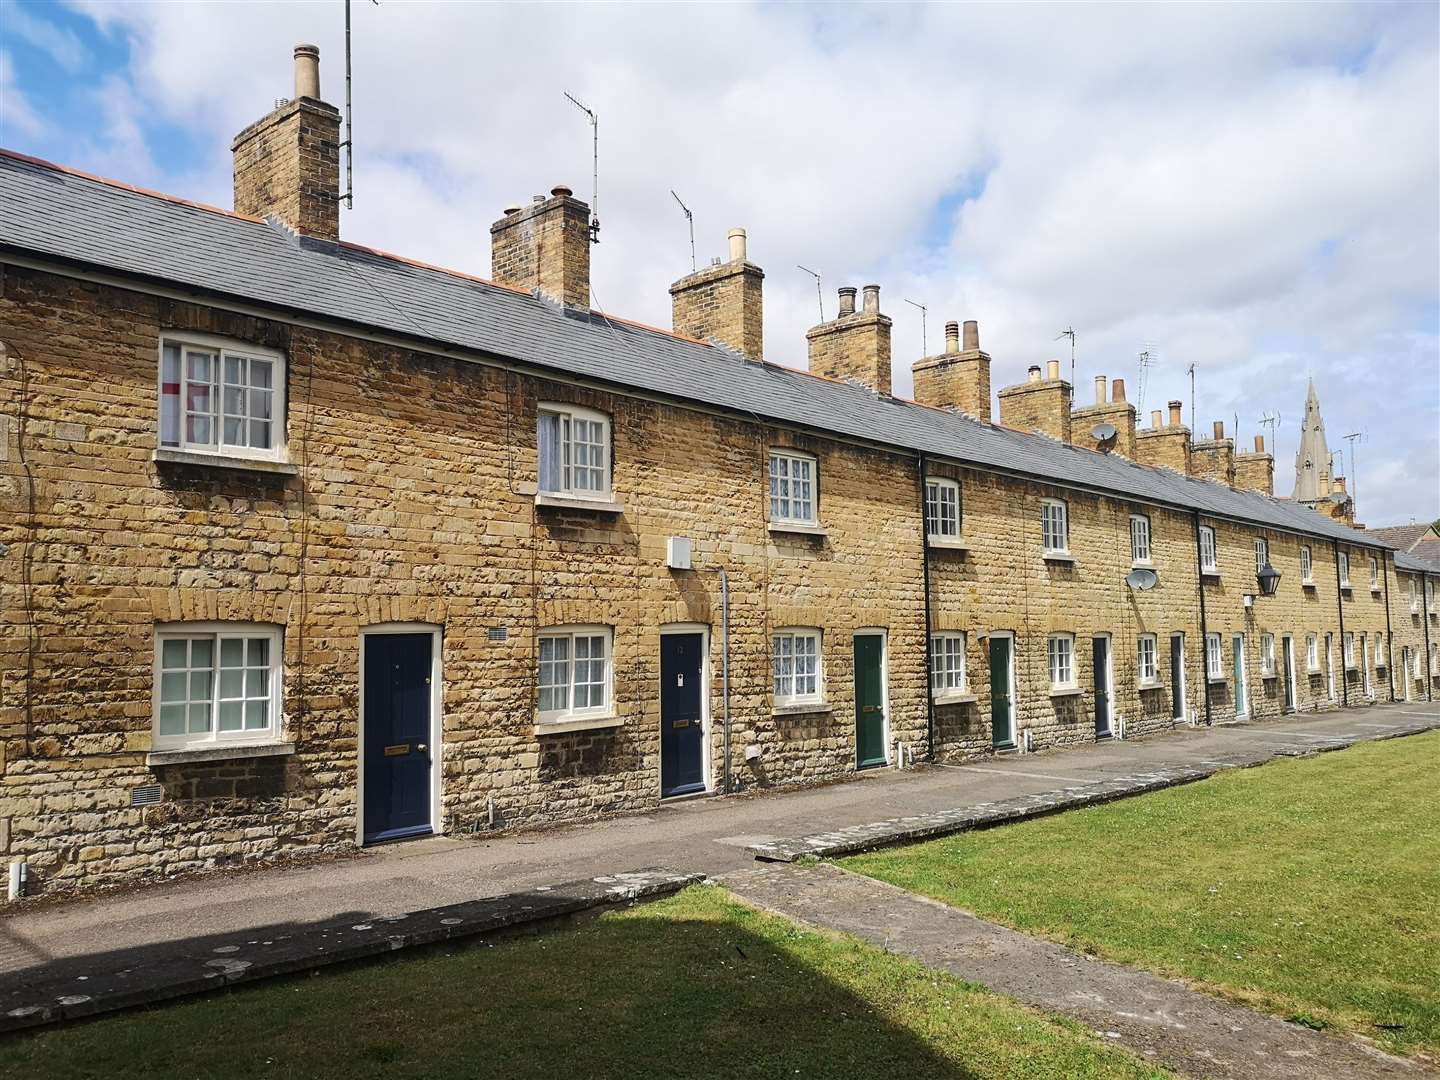 South Kesteven District Council has 6,000 properties including Lumby's Terrace in Stamford